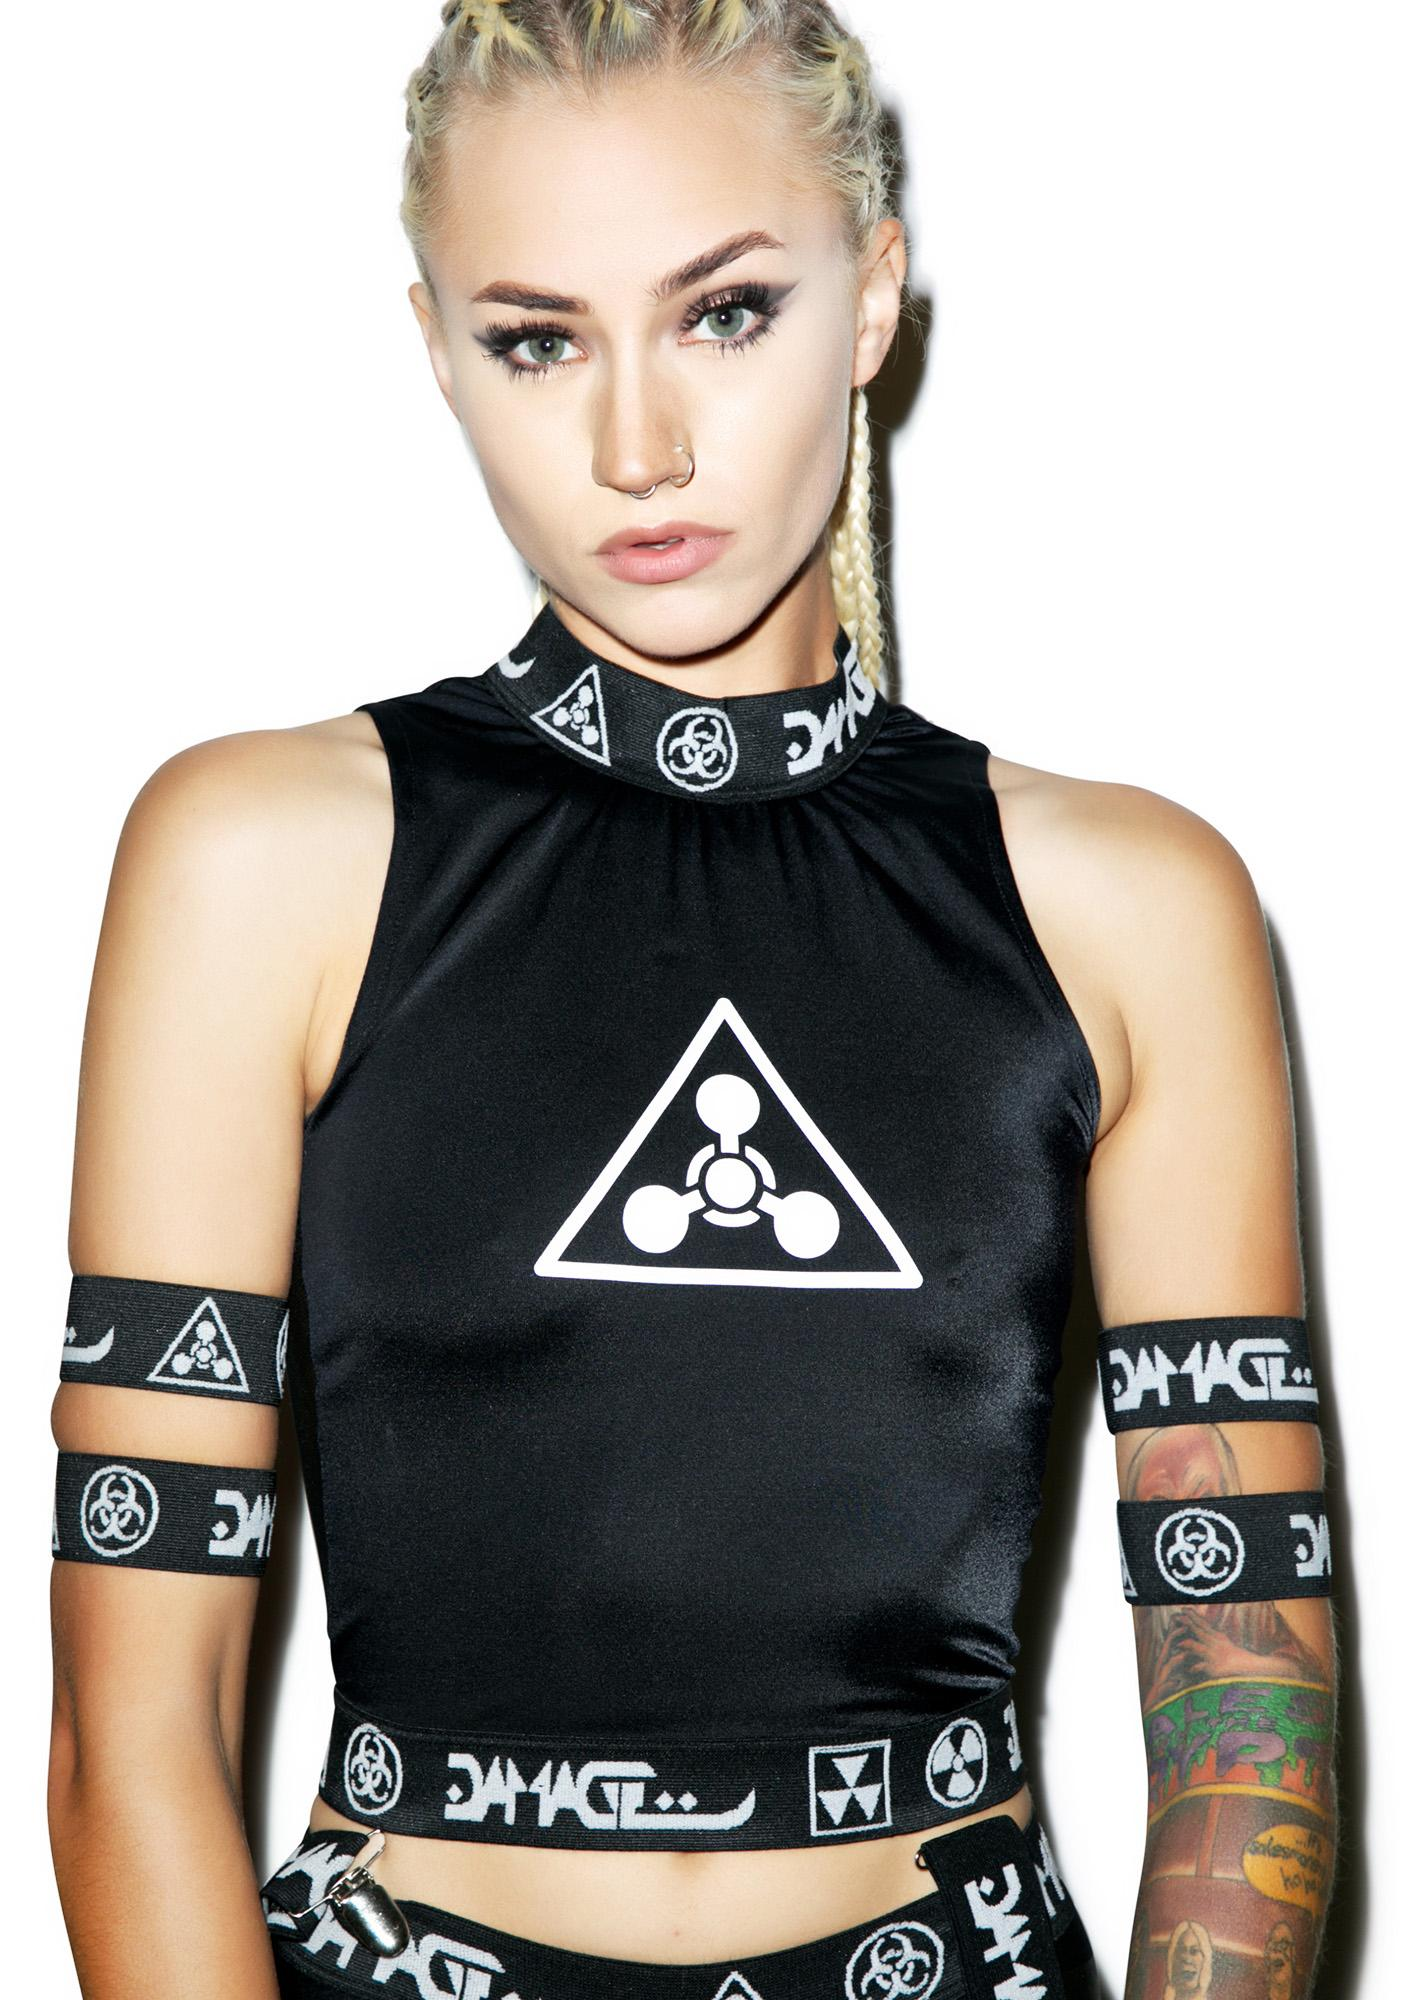 DAMAGE Chemical Warfare Crop Top